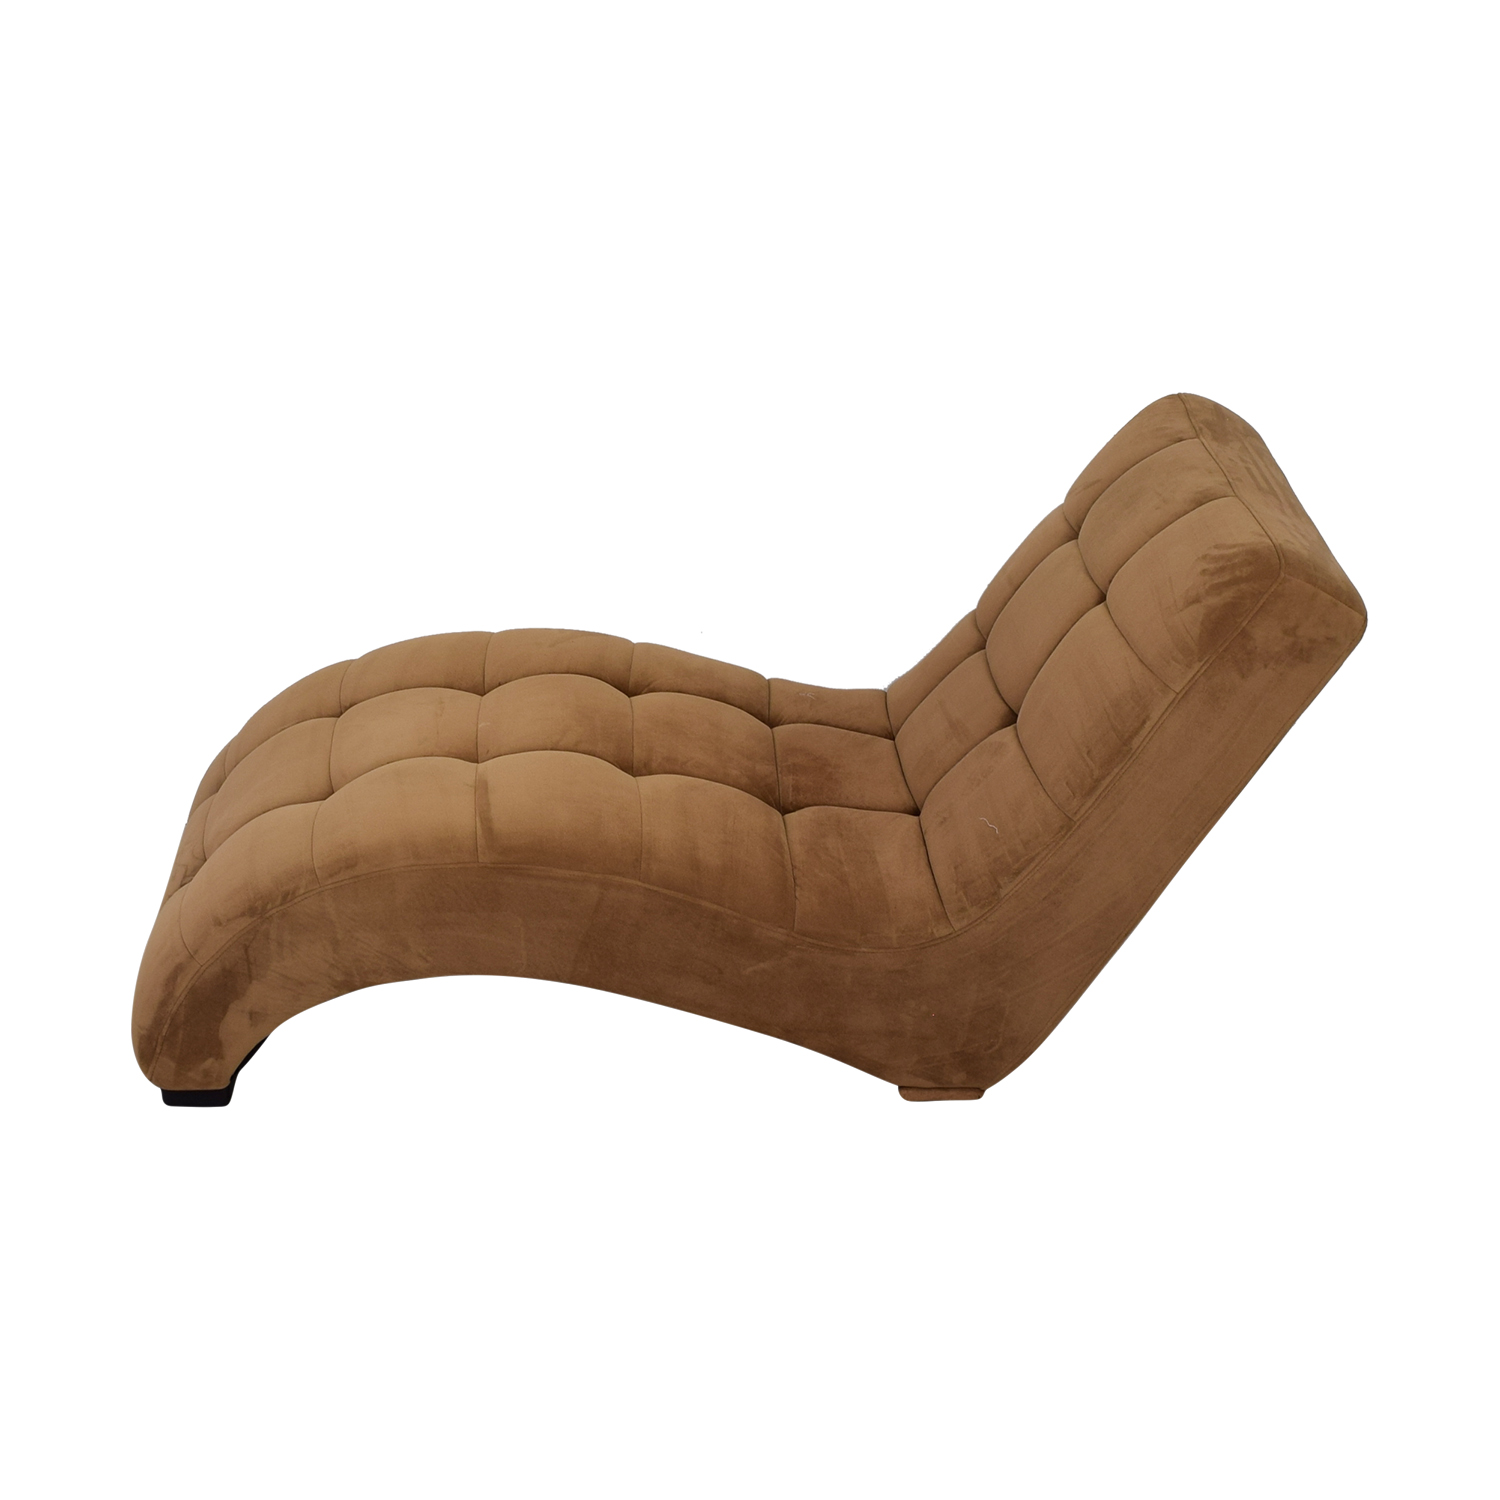 Ashley's Furniture Ashley's Furniture Beige Chaise Lounge coupon